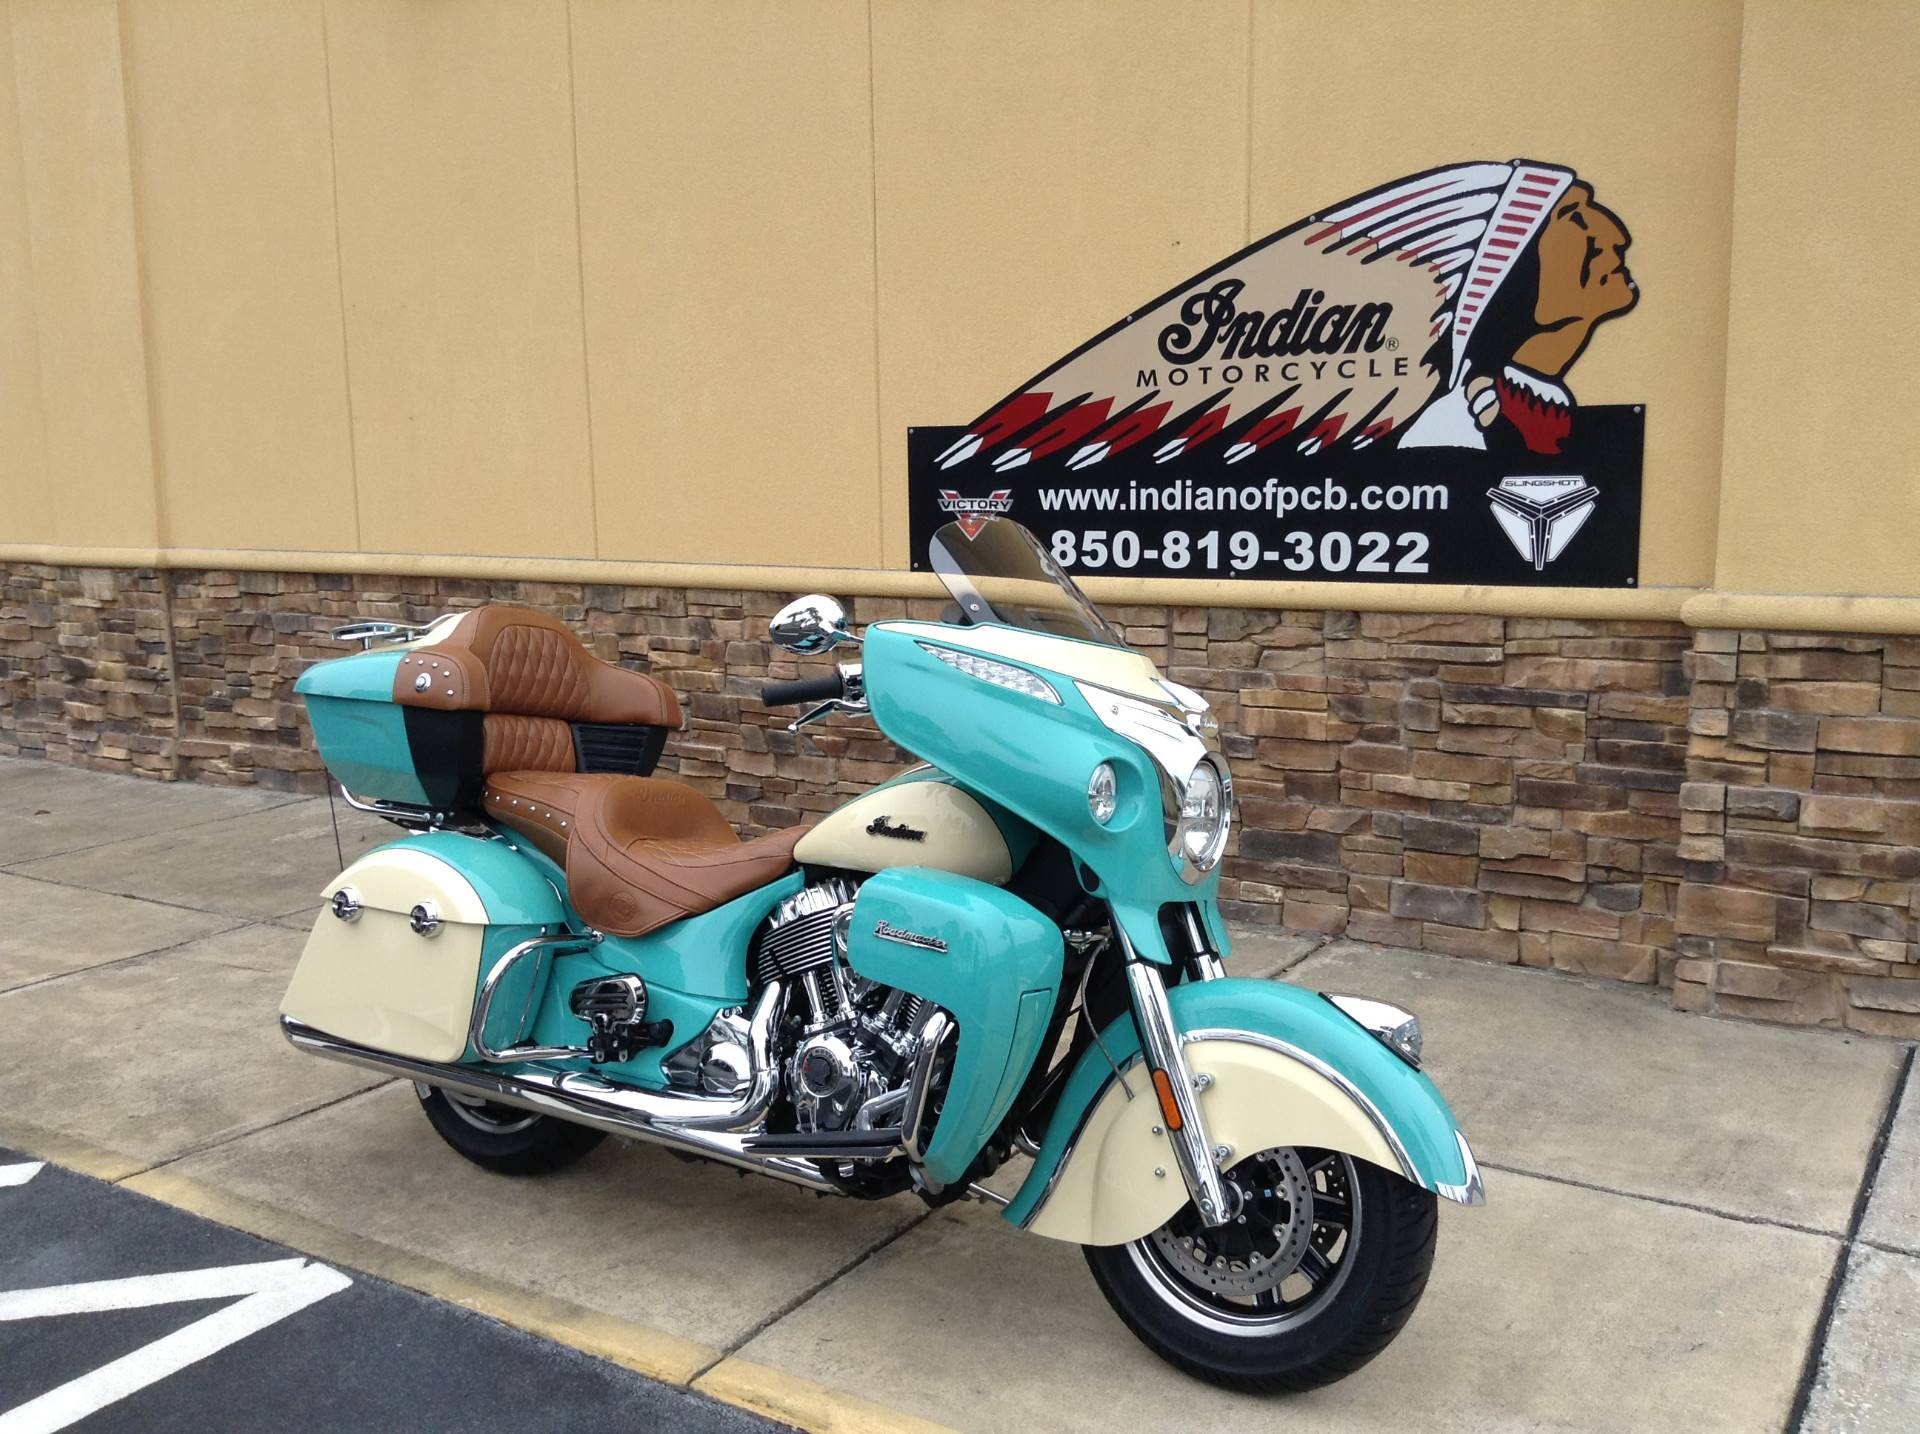 2020 Indian ROAD MASTER ICON SERIES in Panama City Beach, Florida - Photo 2